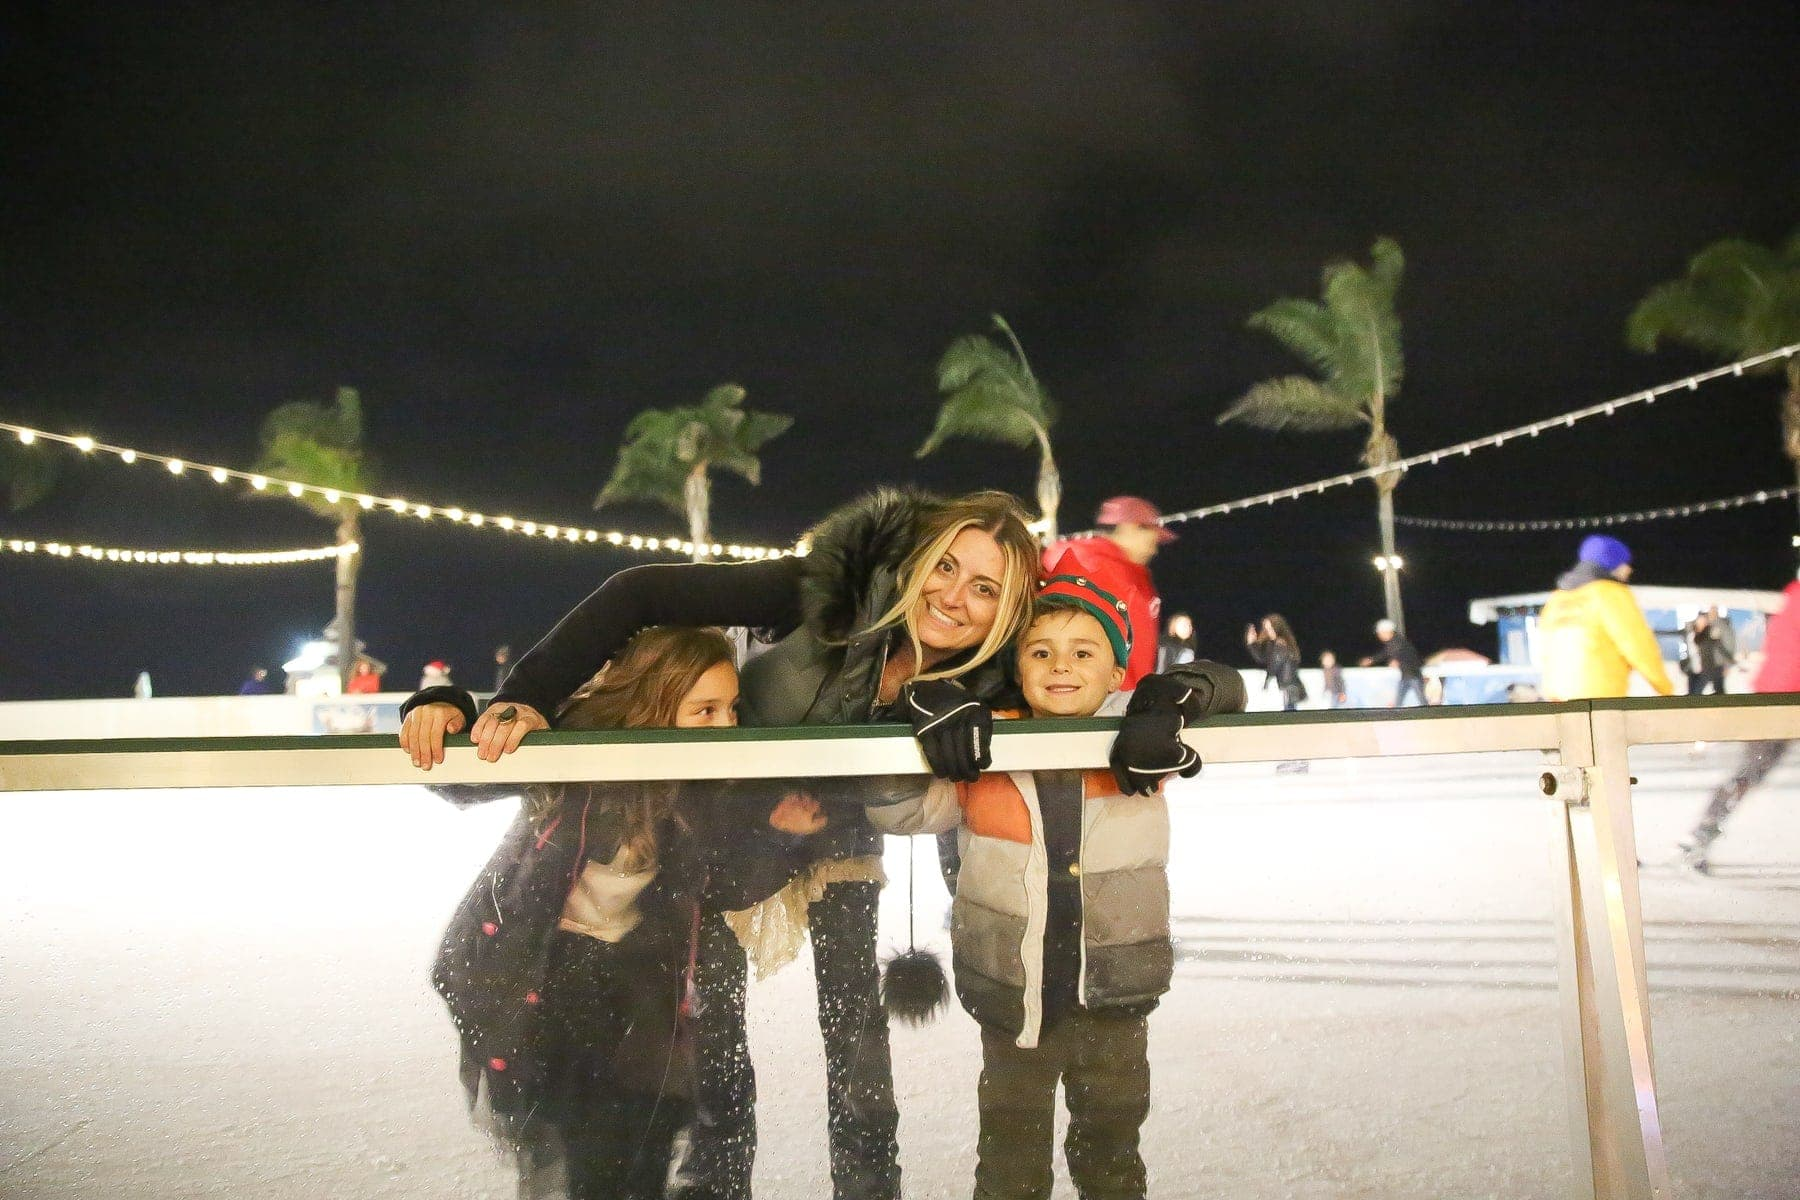 mother and children ice skating